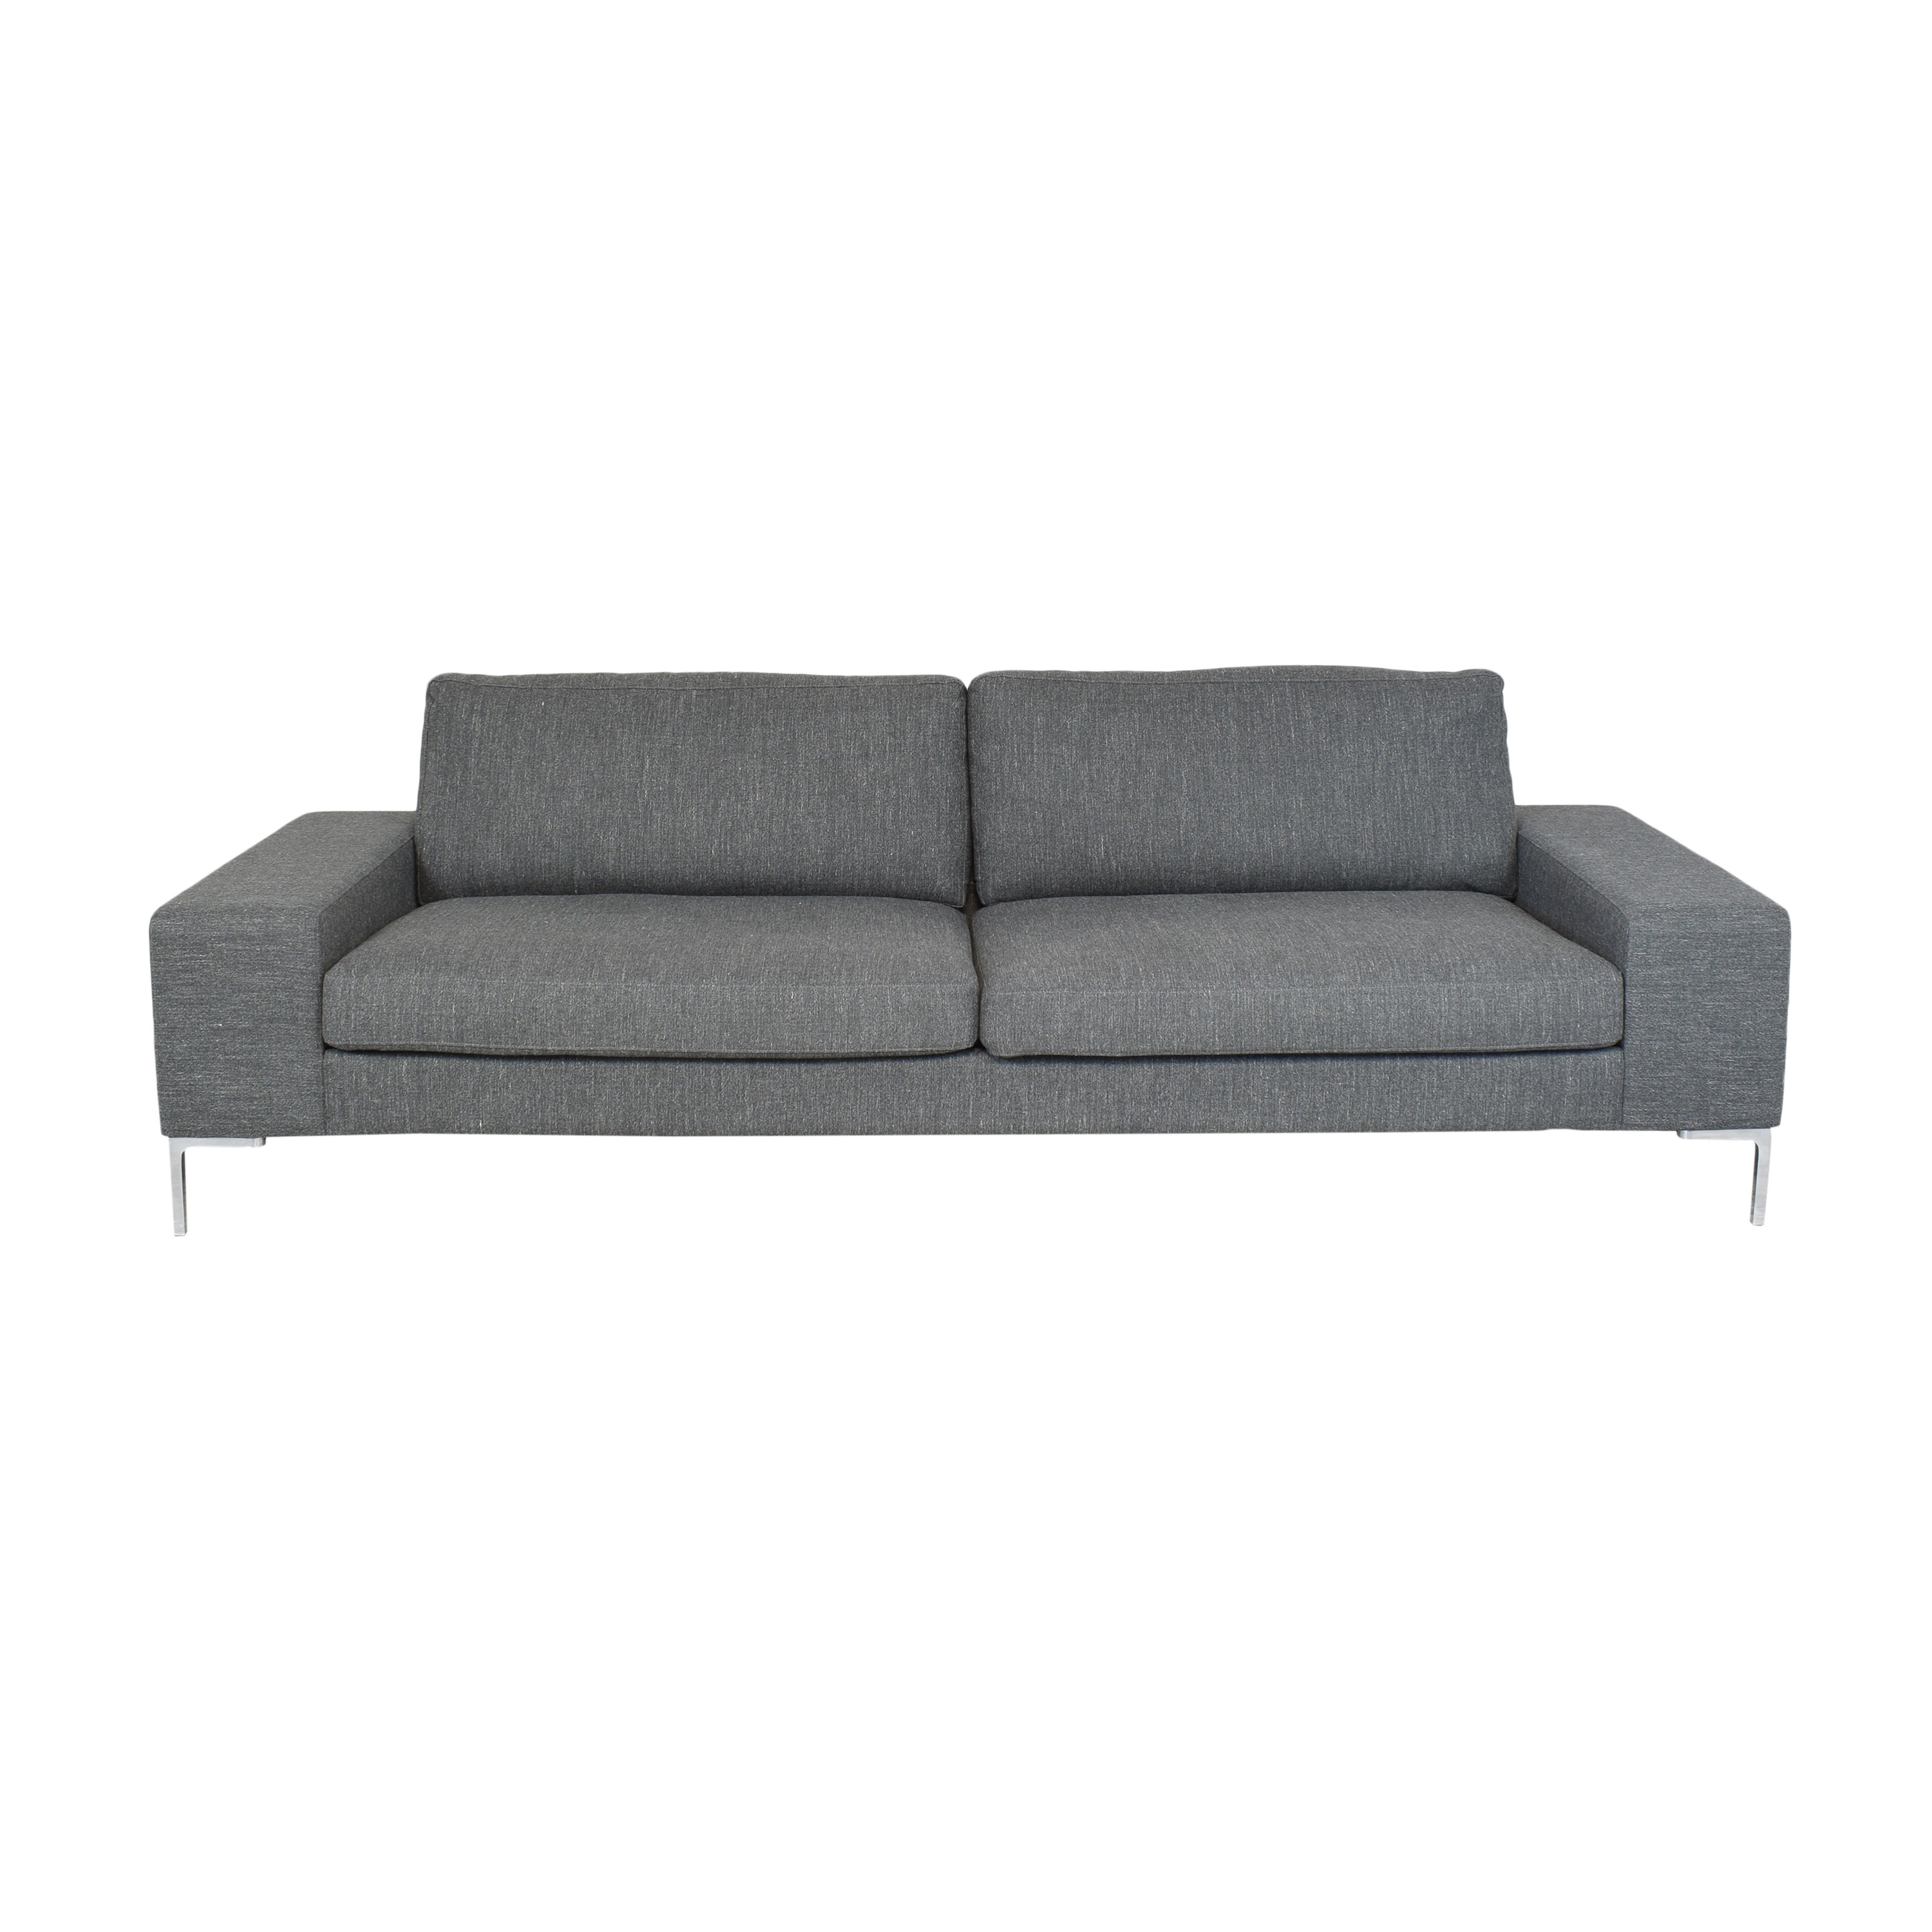 Design Within Reach Design Within Reach Arena Sofa second hand